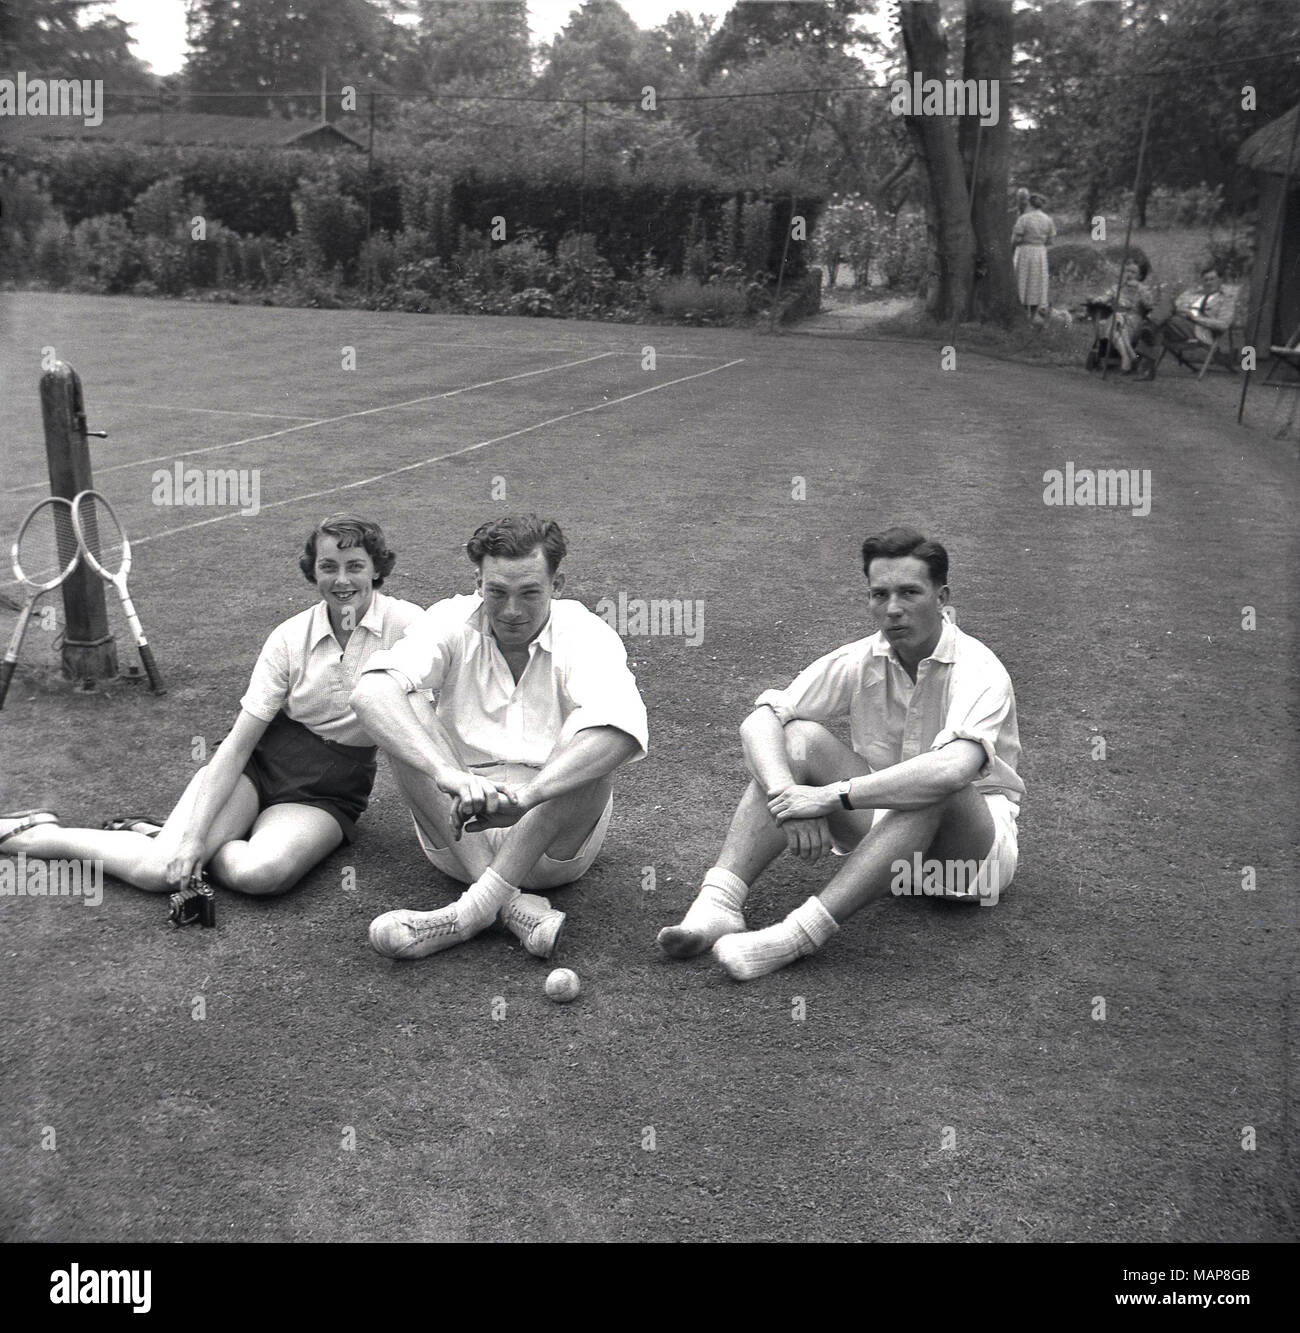 1954, historical, players sitting on the grass, relaxing afer a game of lawn tennis at the Bonham-Carter's country-house, Wyck Place, near Alton, Hampshire, England, UK. - Stock Image